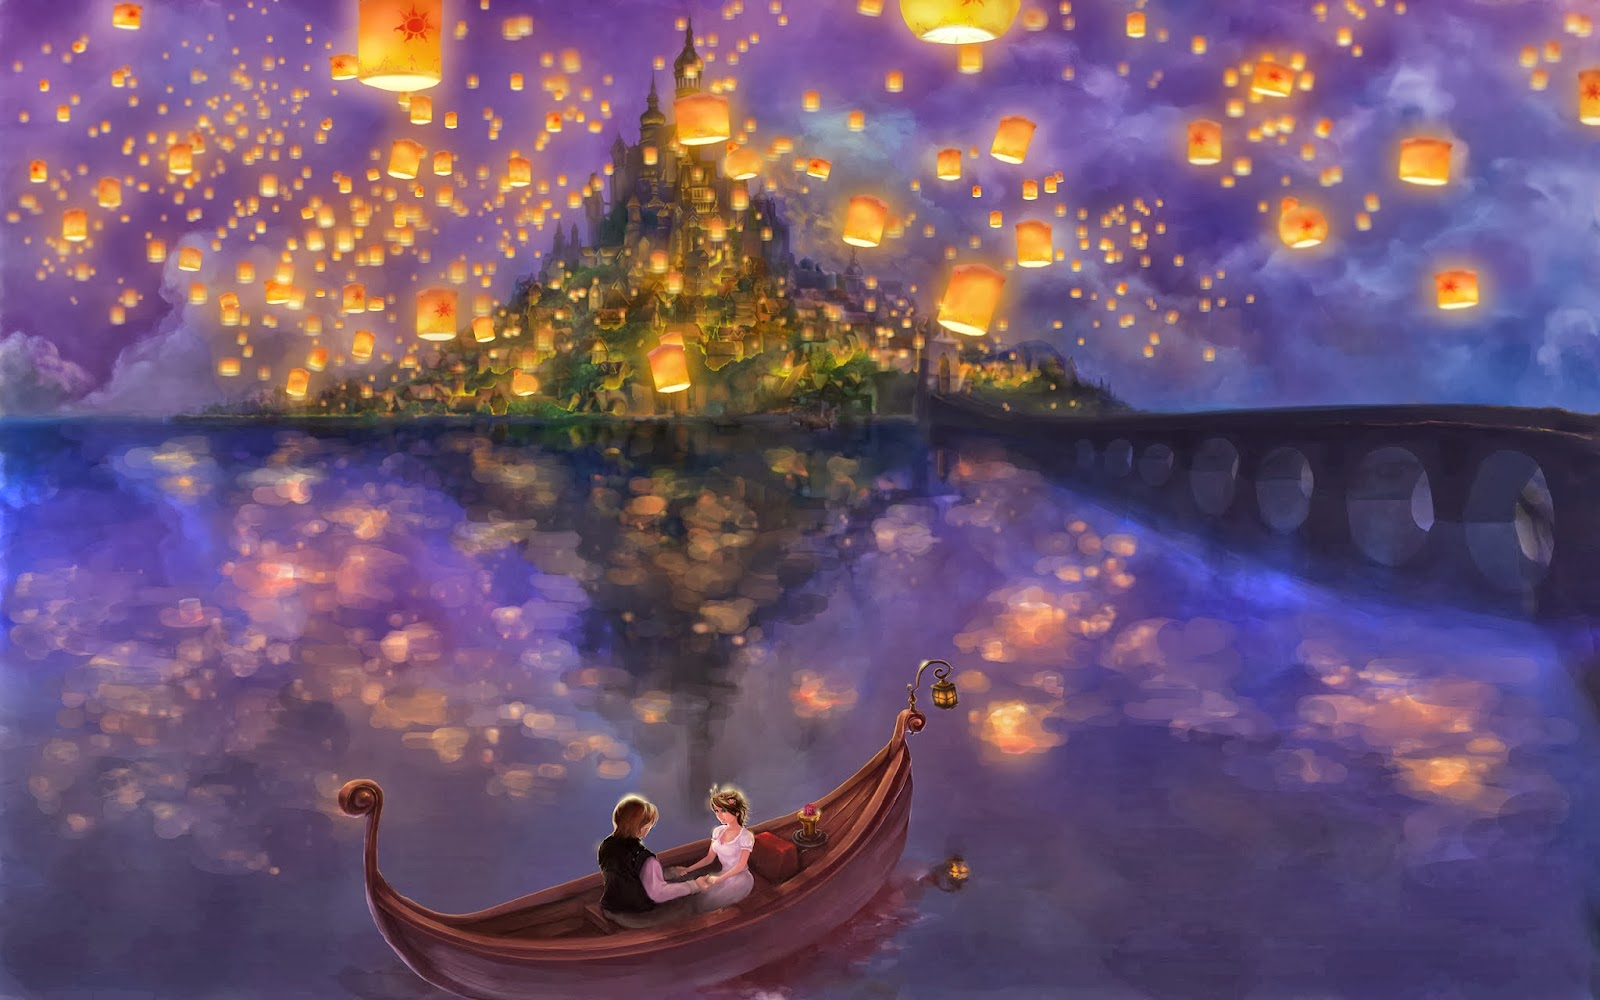 Tangled Castle HD Wallpapers Disney Movies Posters HD 1600x1000